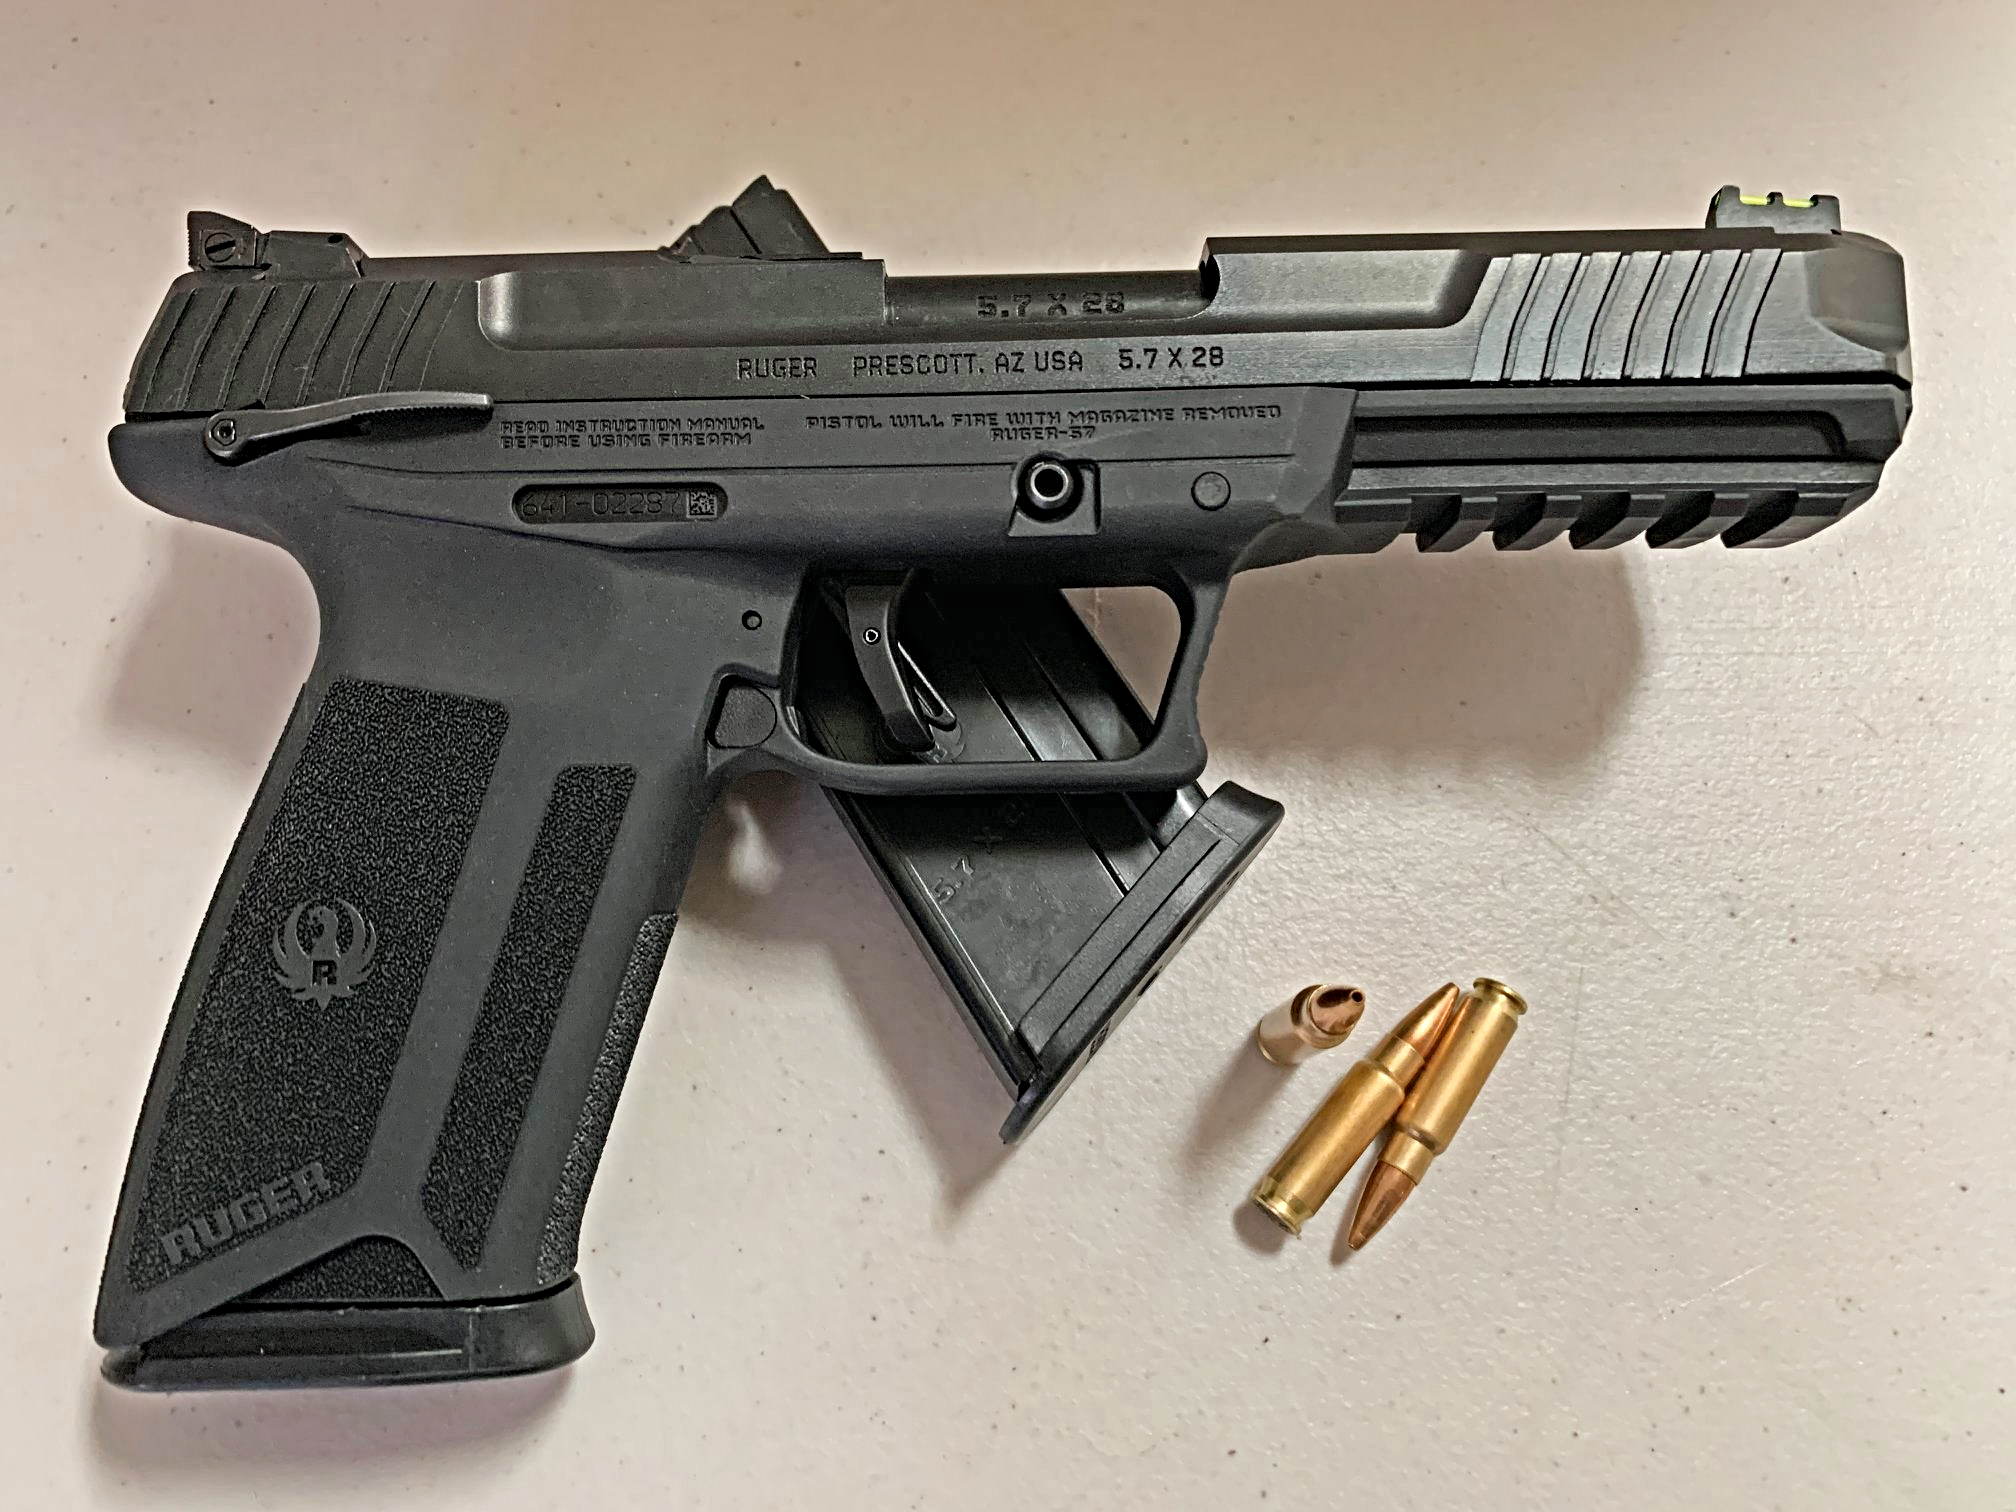 Ruger, striker-fired, pistol, gun review, Ruger 57, CrossBreed Holsters, 57, new gun, new pistol, guns, Ruger firearms, Ruger pistol, new Ruger, new Ruger Pistol, 16401, 16402, firearms, new firearms, competition firearms, comp guns, competition guns, new guns,